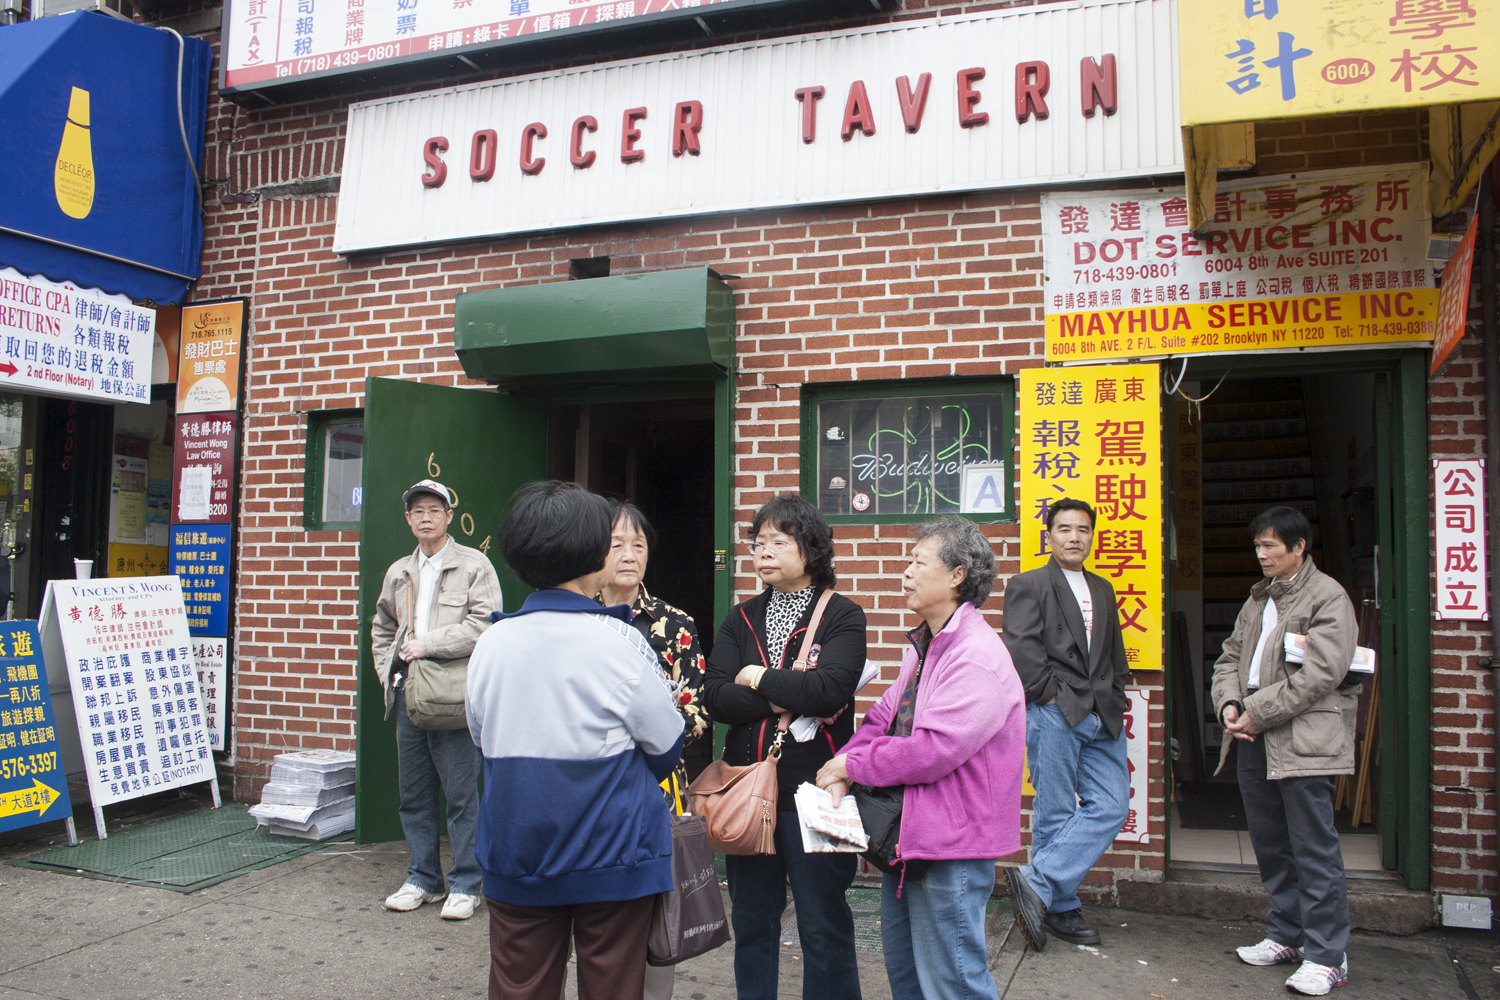 The Soccer Tavern in Brooklyn's 8th Avenue Chinatown (Photo: Angela Sharp)